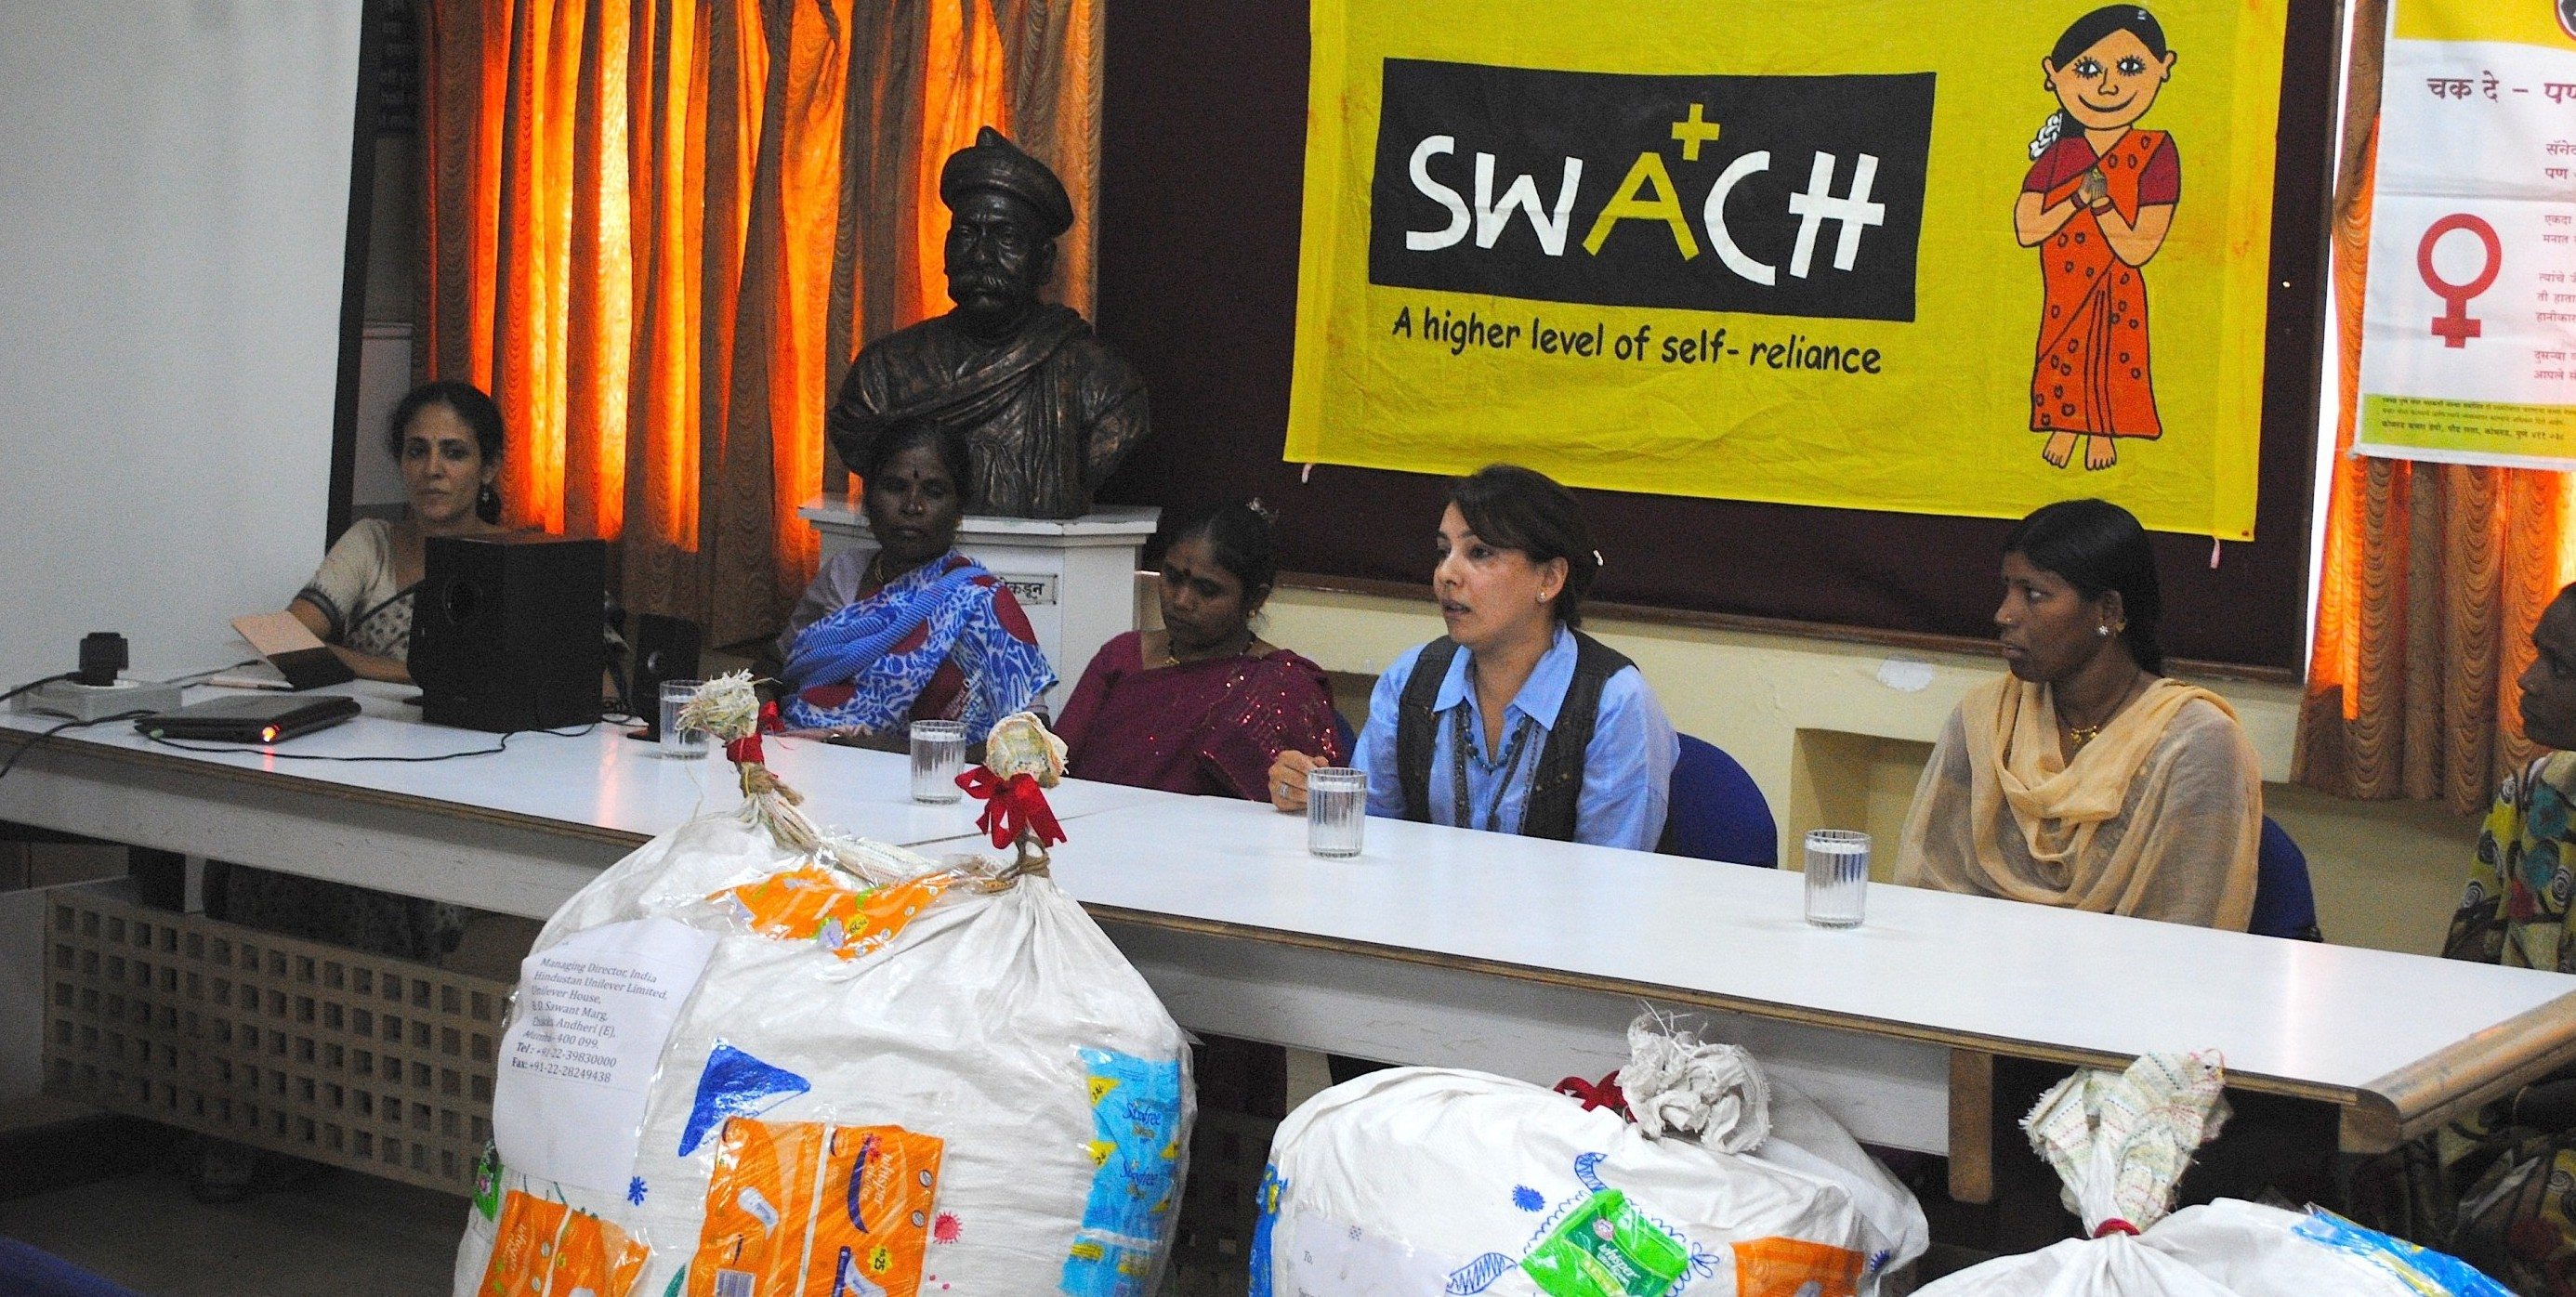 A press conference in March 2013 to address the issue of proper disposal of sanitary napkins. Photo credit: SWaCH.